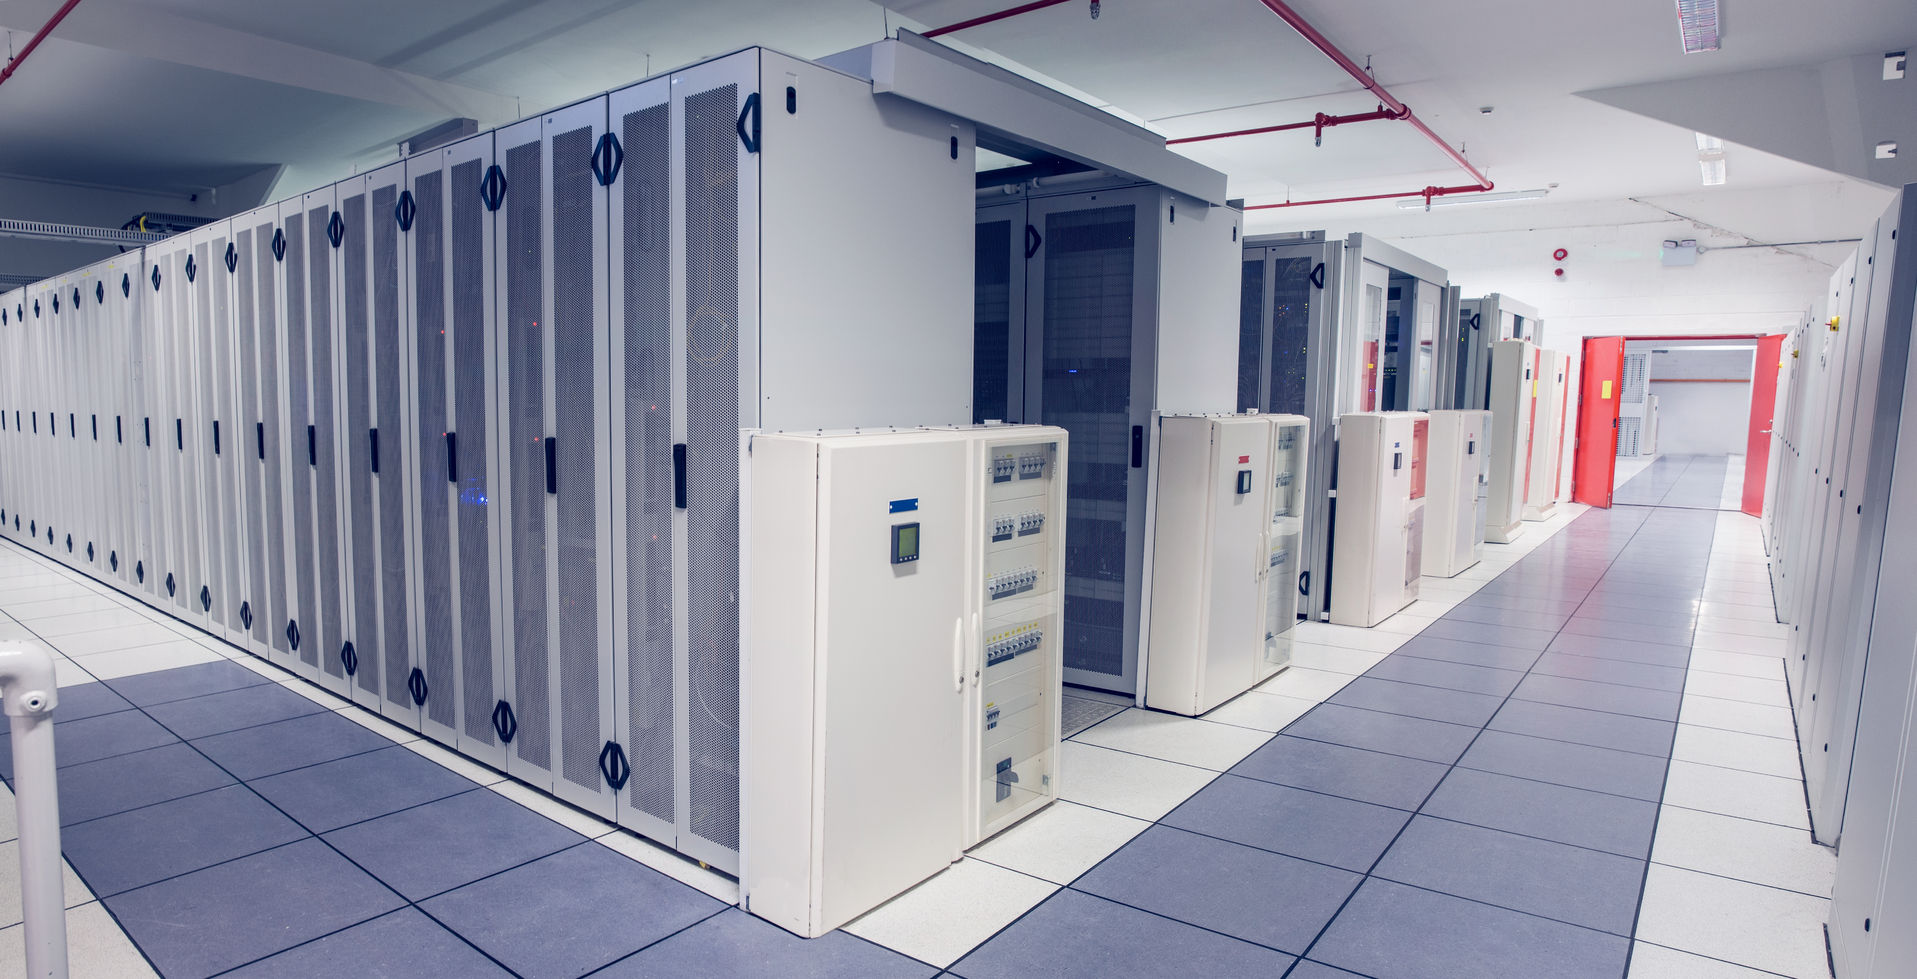 31316278 - empty hallway of server towers in large data center